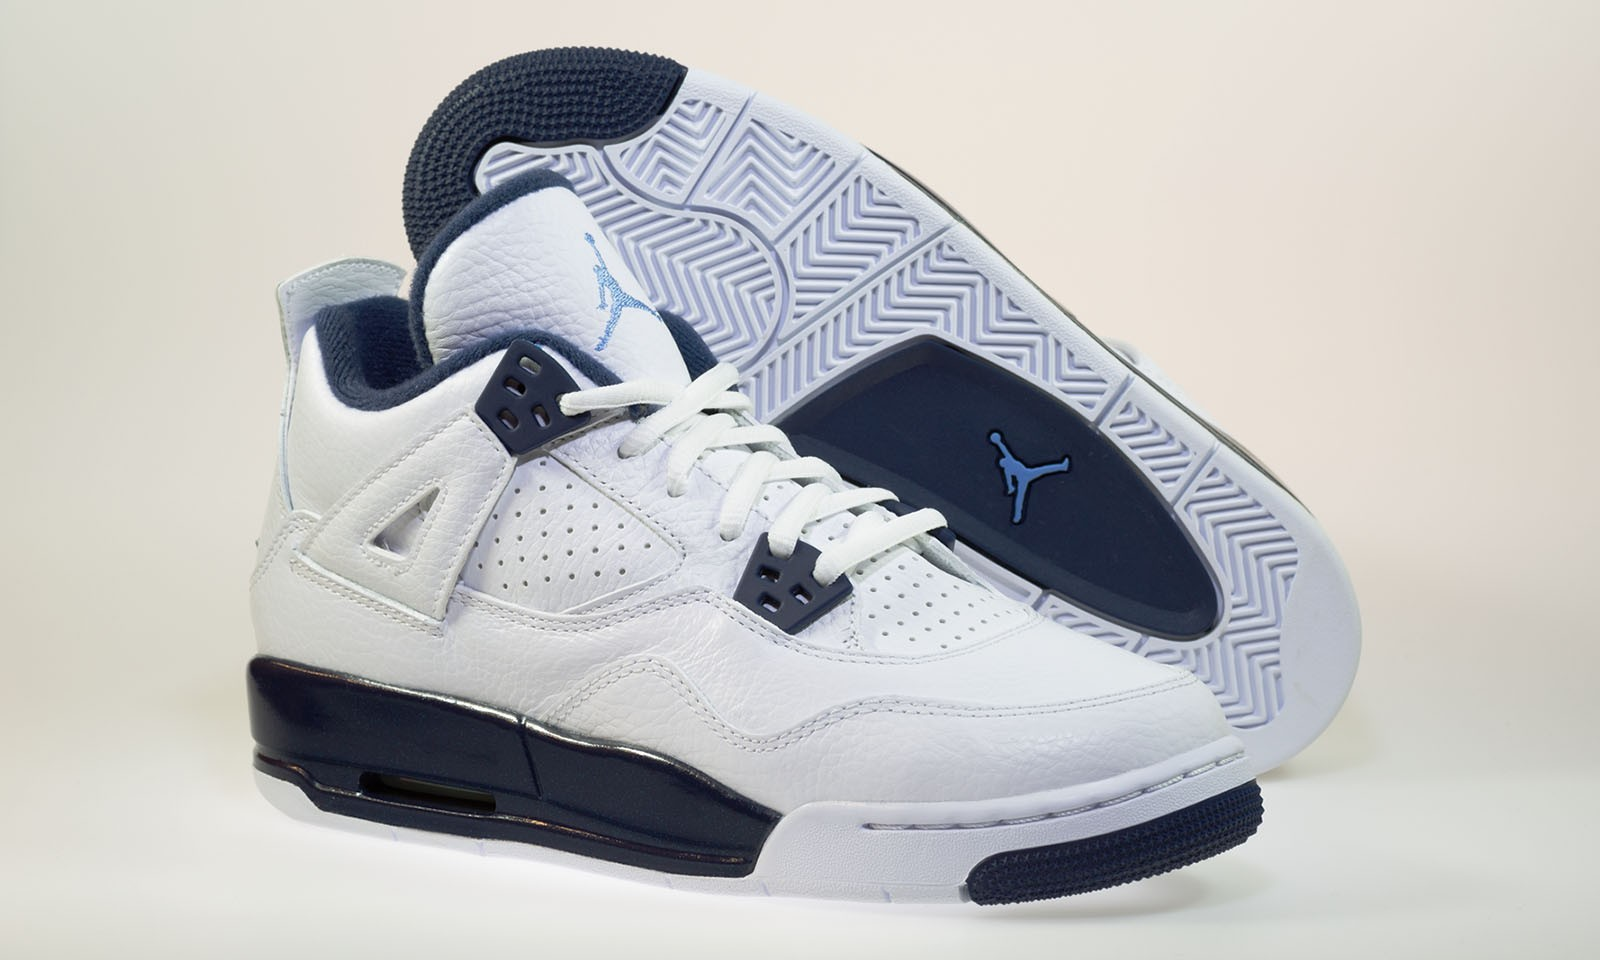 Air Jordan 4(IV) Retro BG (Boys' GS) White Legend Blue Midnight Navy Basketball Shoes 408452-107